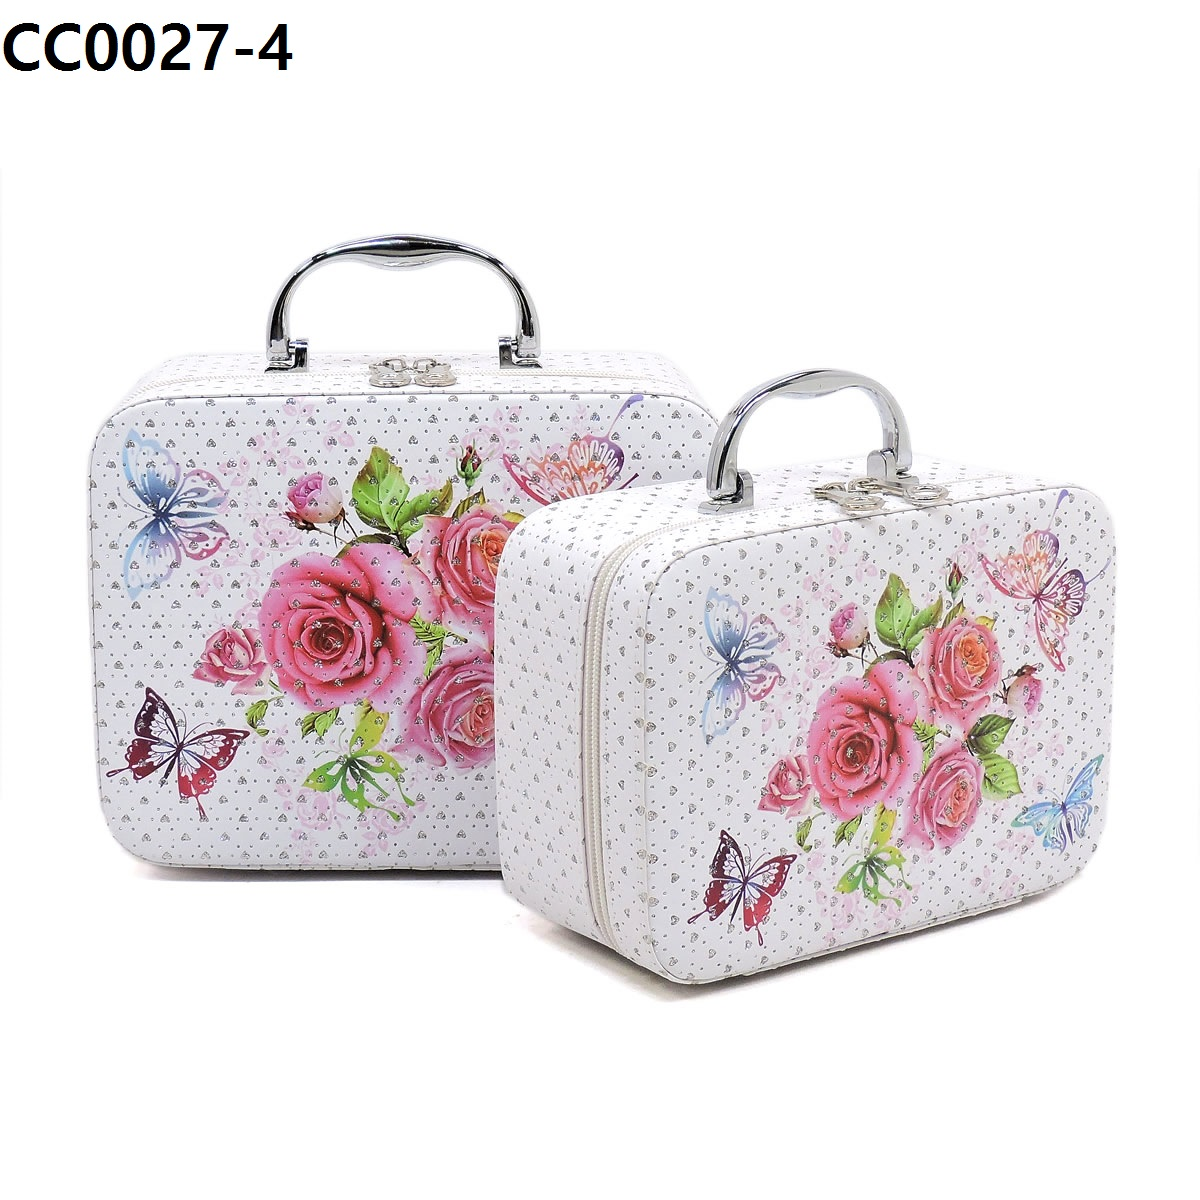 Flower Printed 2 in 1 Cosmetic Bag 4